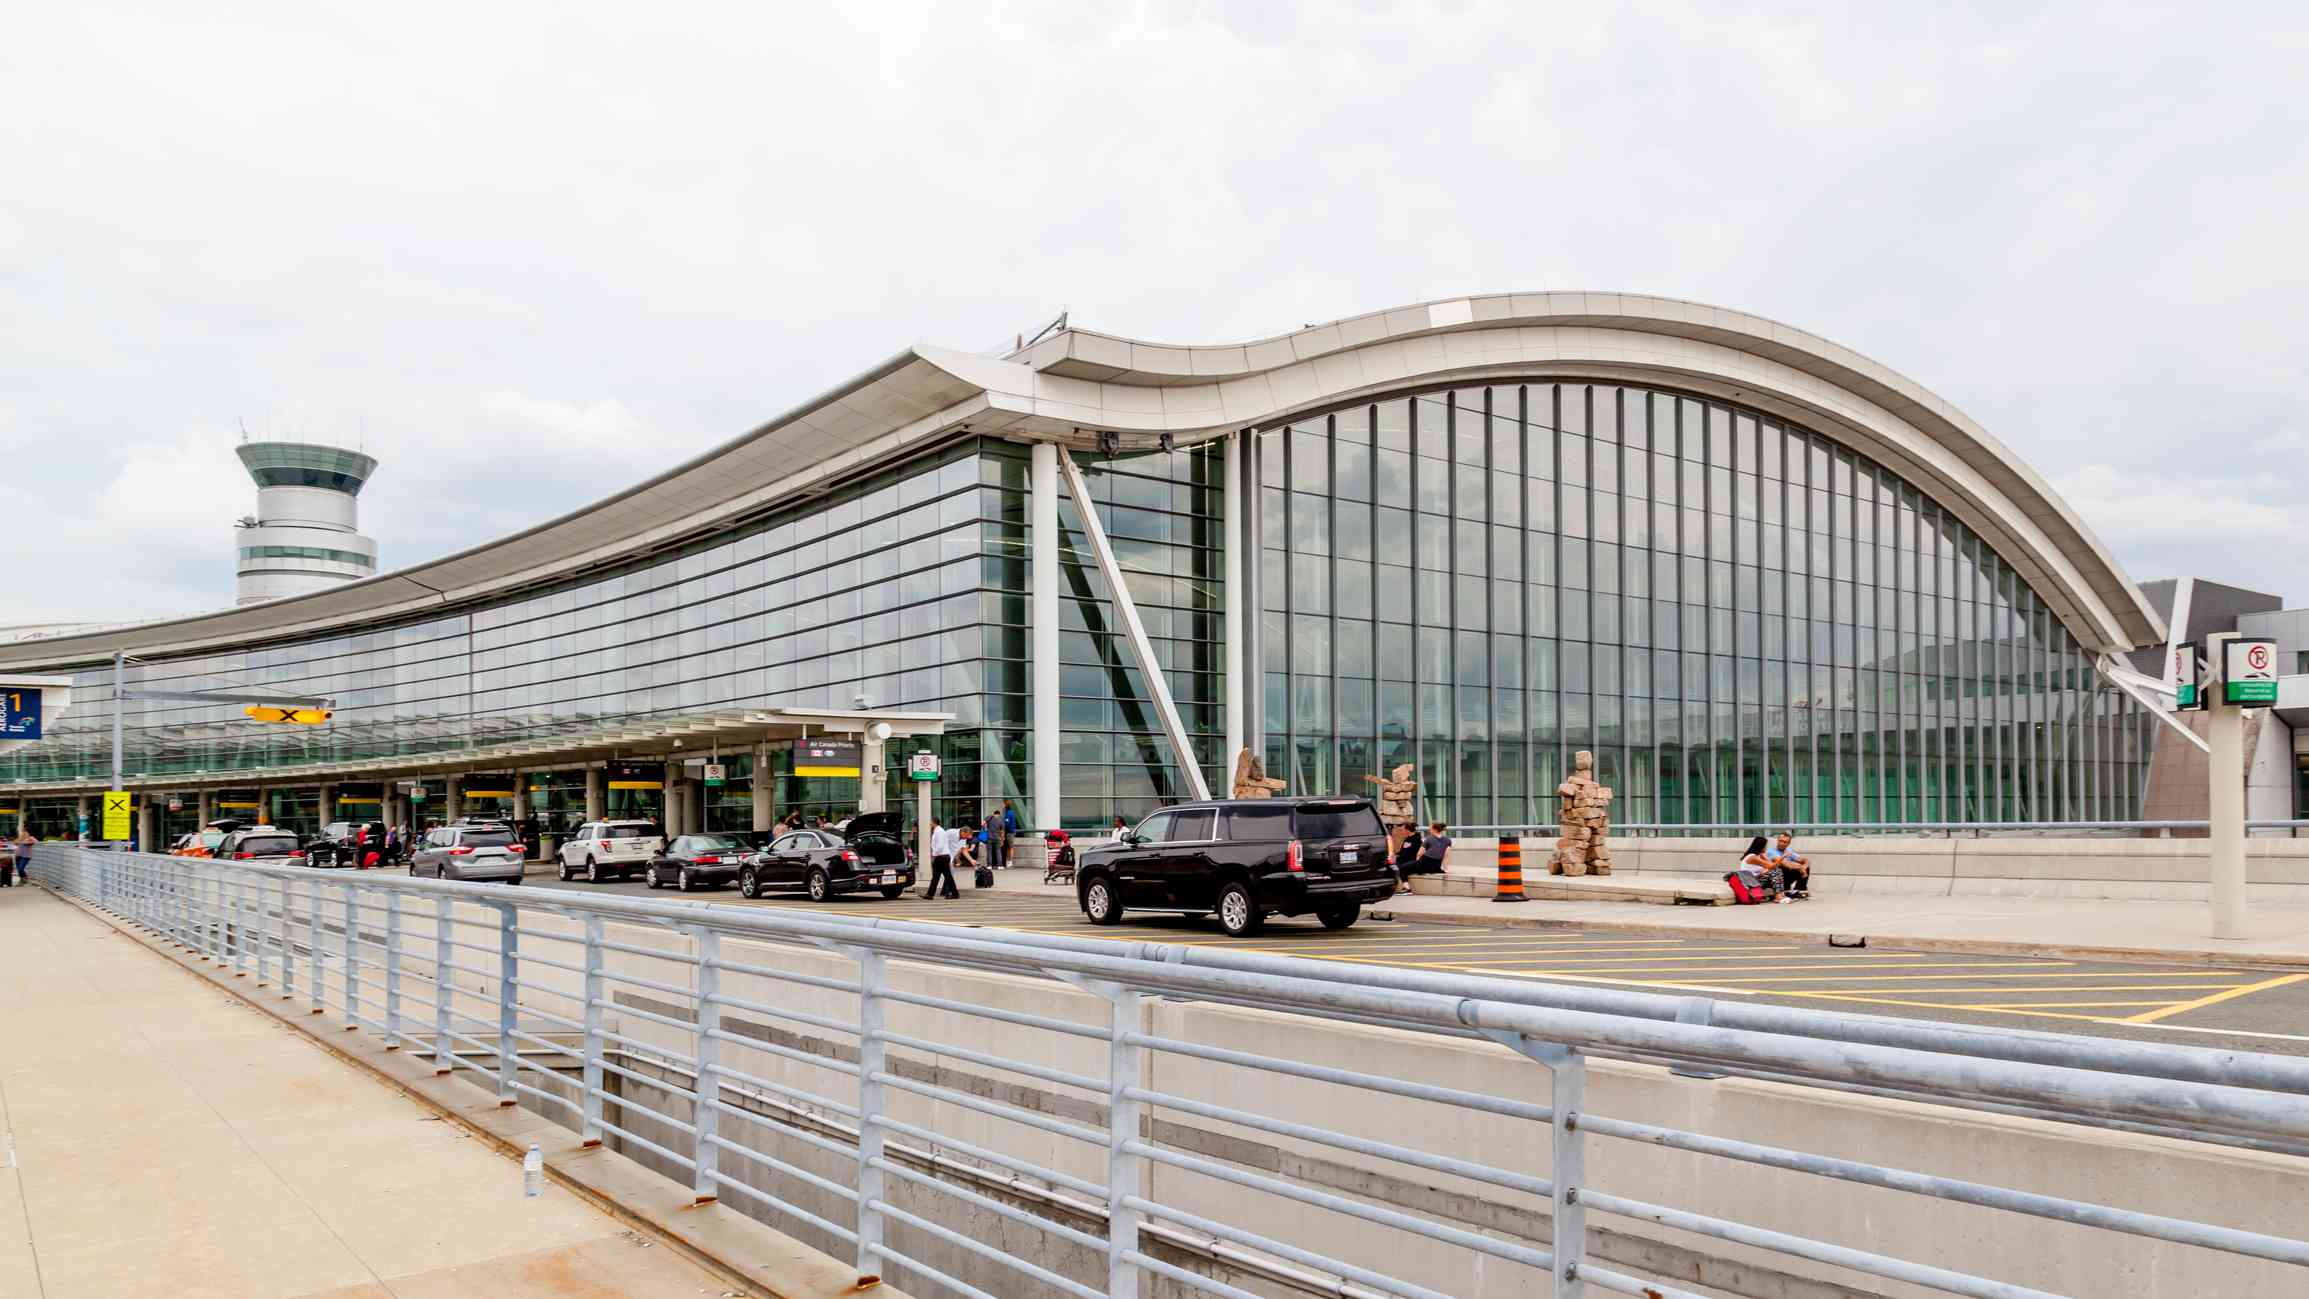 Exterior view of Toronto Pearson Airport in Toronto